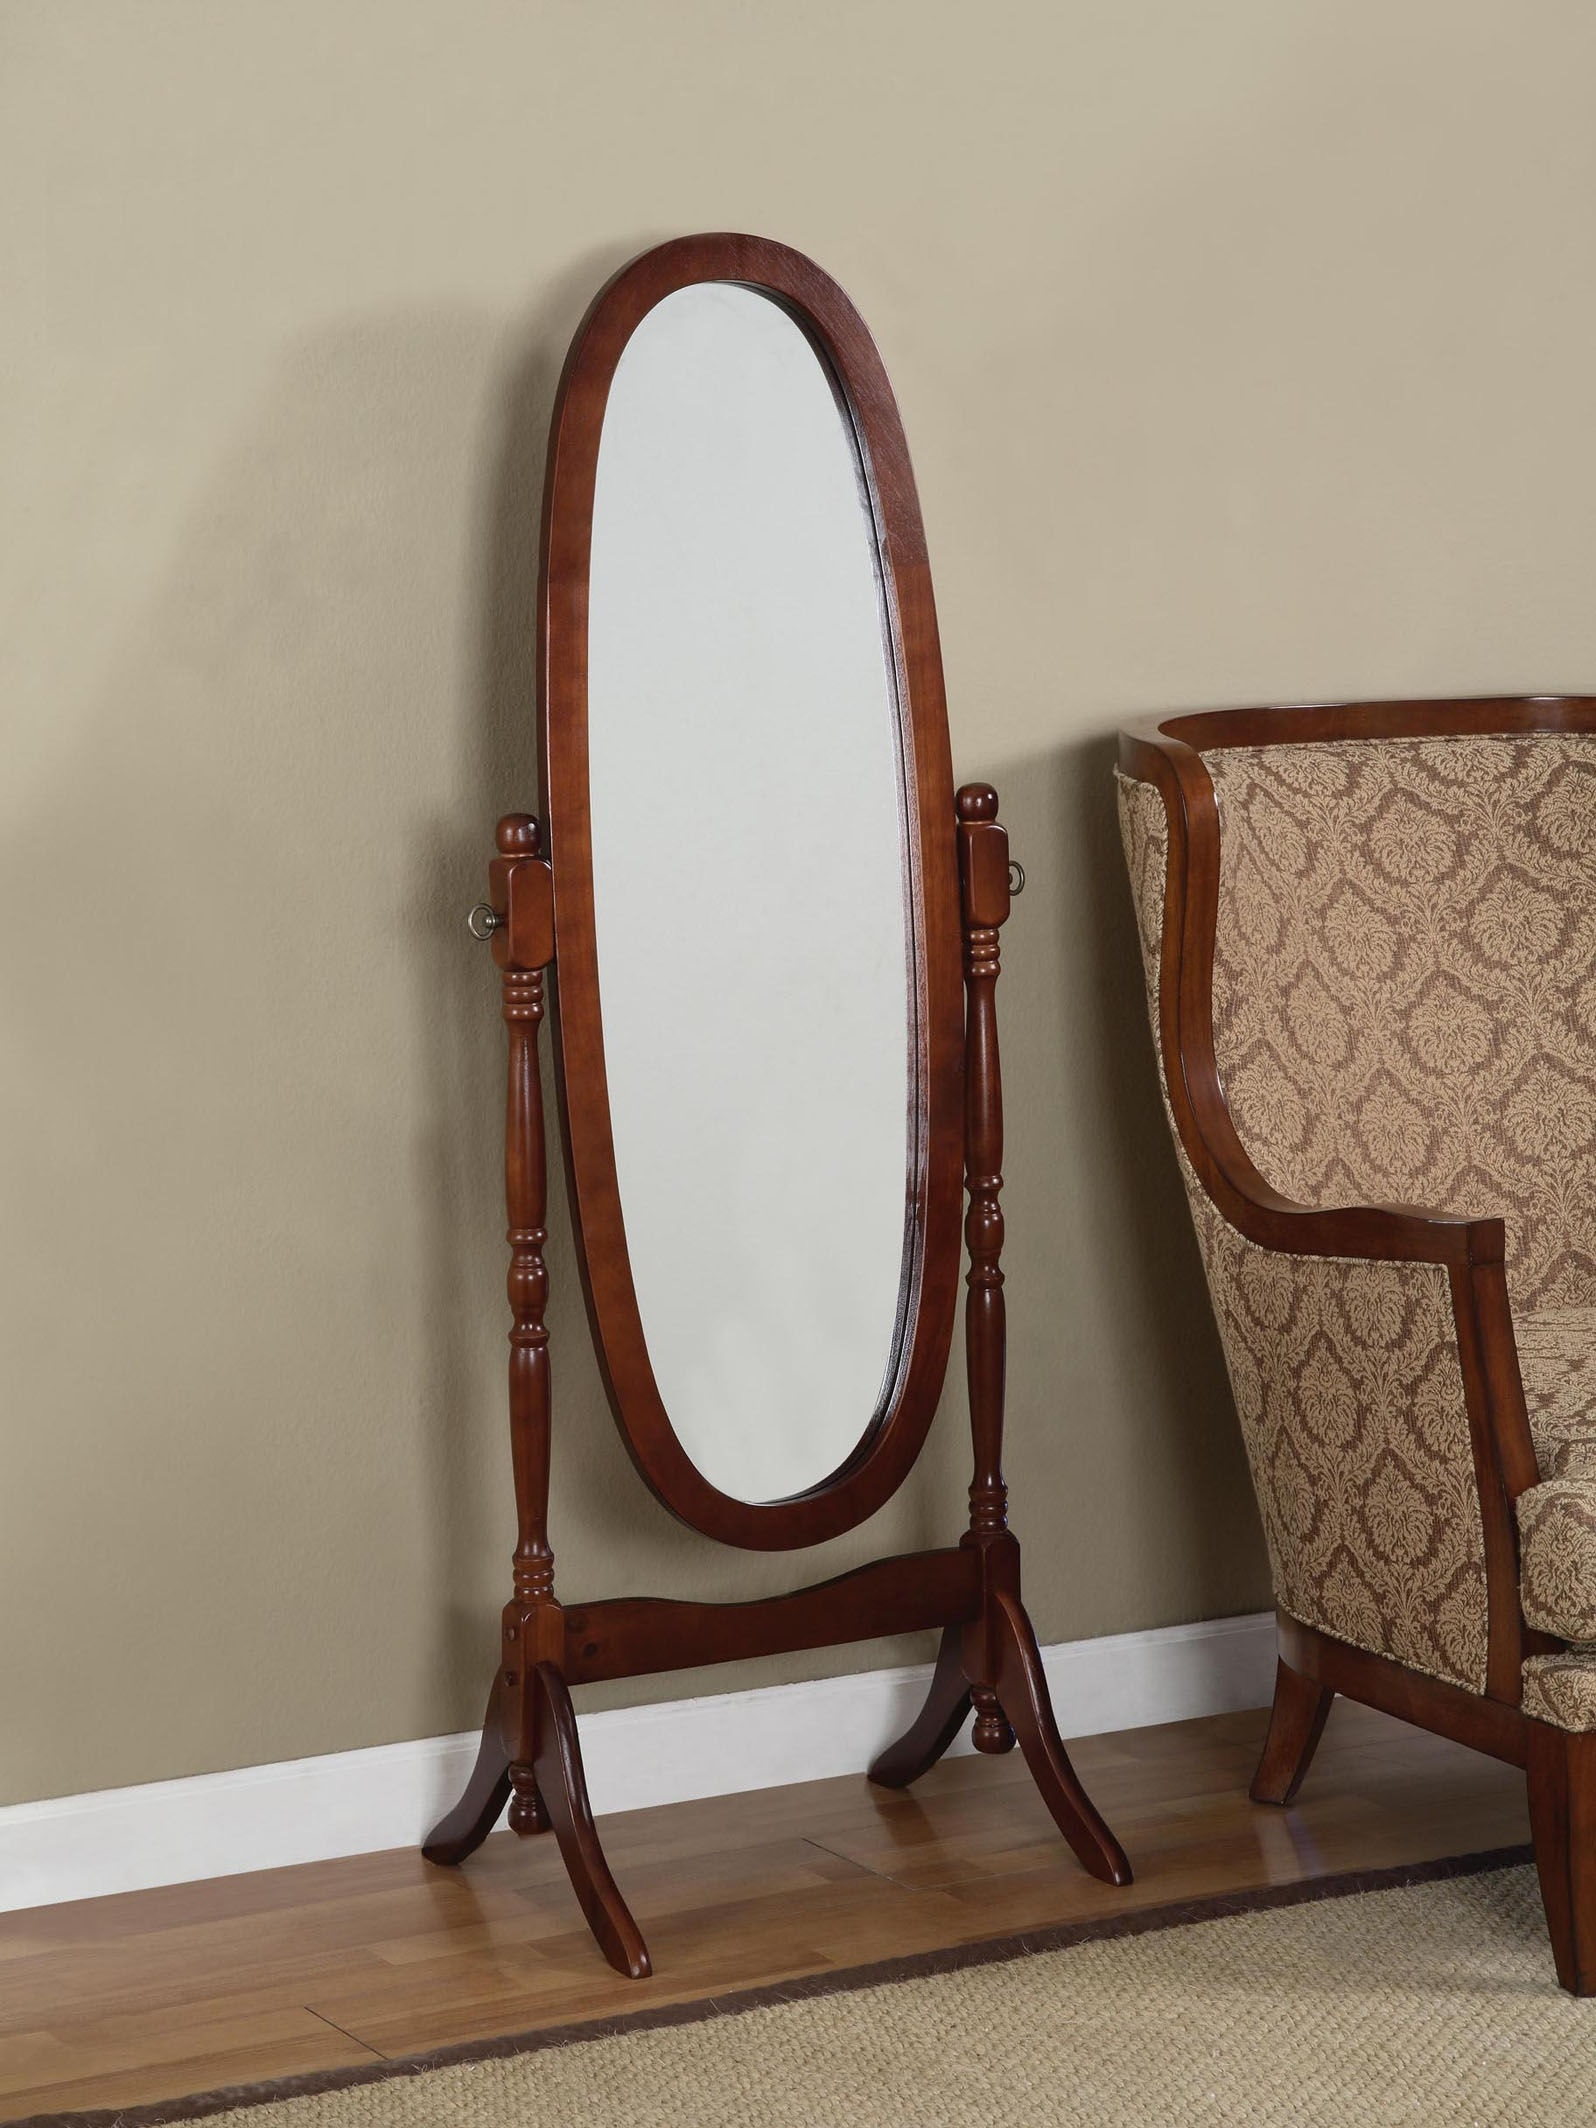 Charming Cheval Mirror Jewelry Armoire Ideas Full Length Swivel Inside Free Standing Oval Mirror (Image 5 of 15)